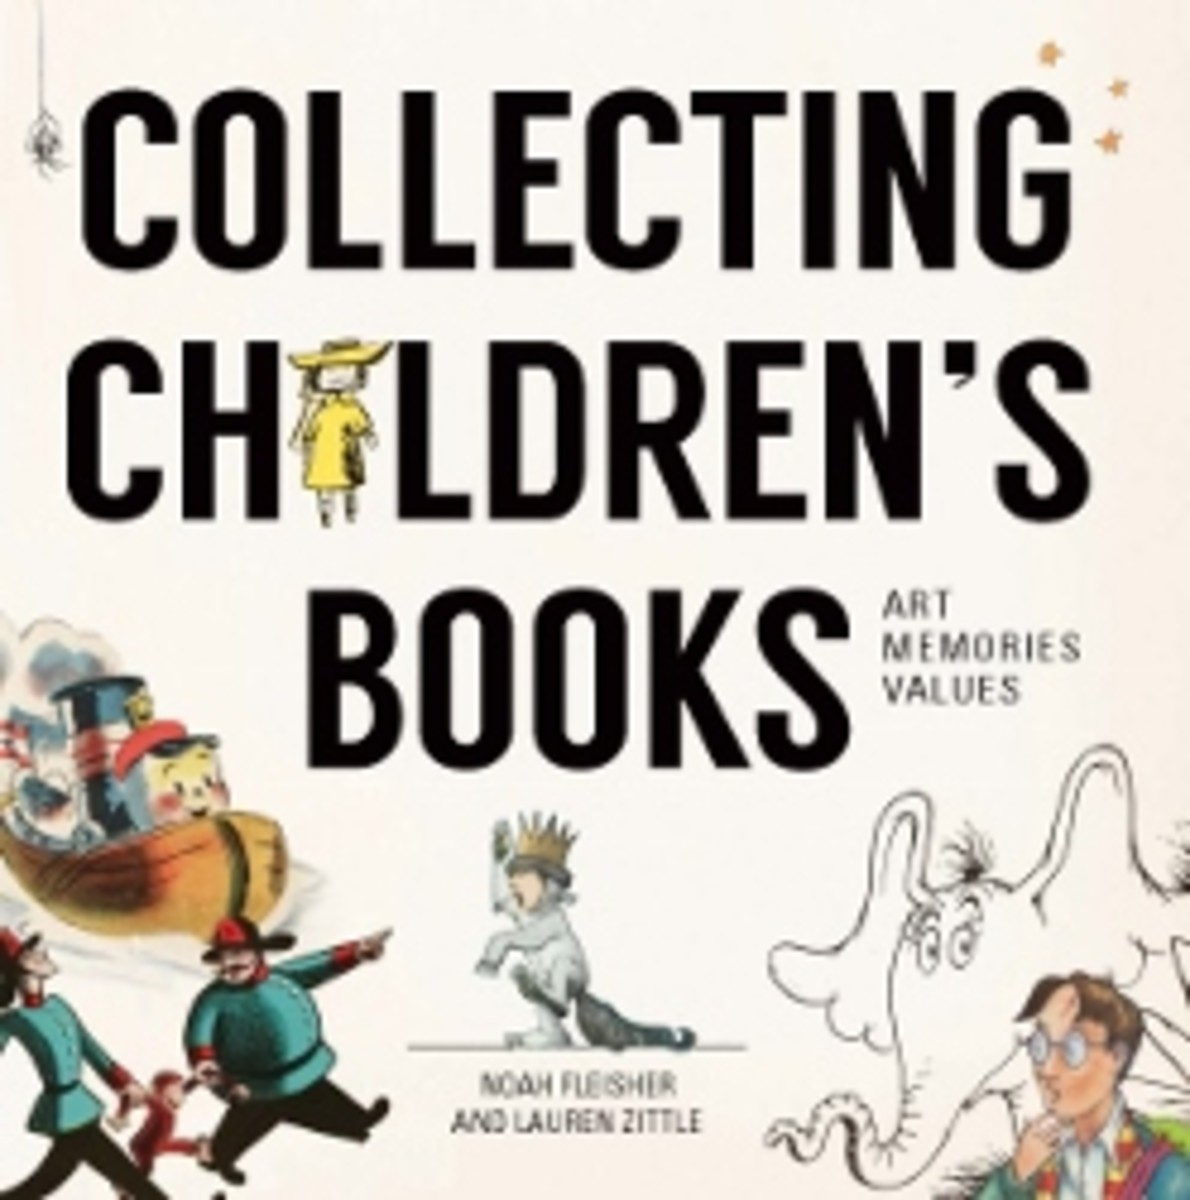 """Collecting Children's Books"" is available at KrauseBooks.com. Use Discount Code BKSHLF15 to save 40% off the retail price. (Retail $26.99 / Holiday Sale Price $16.19)"